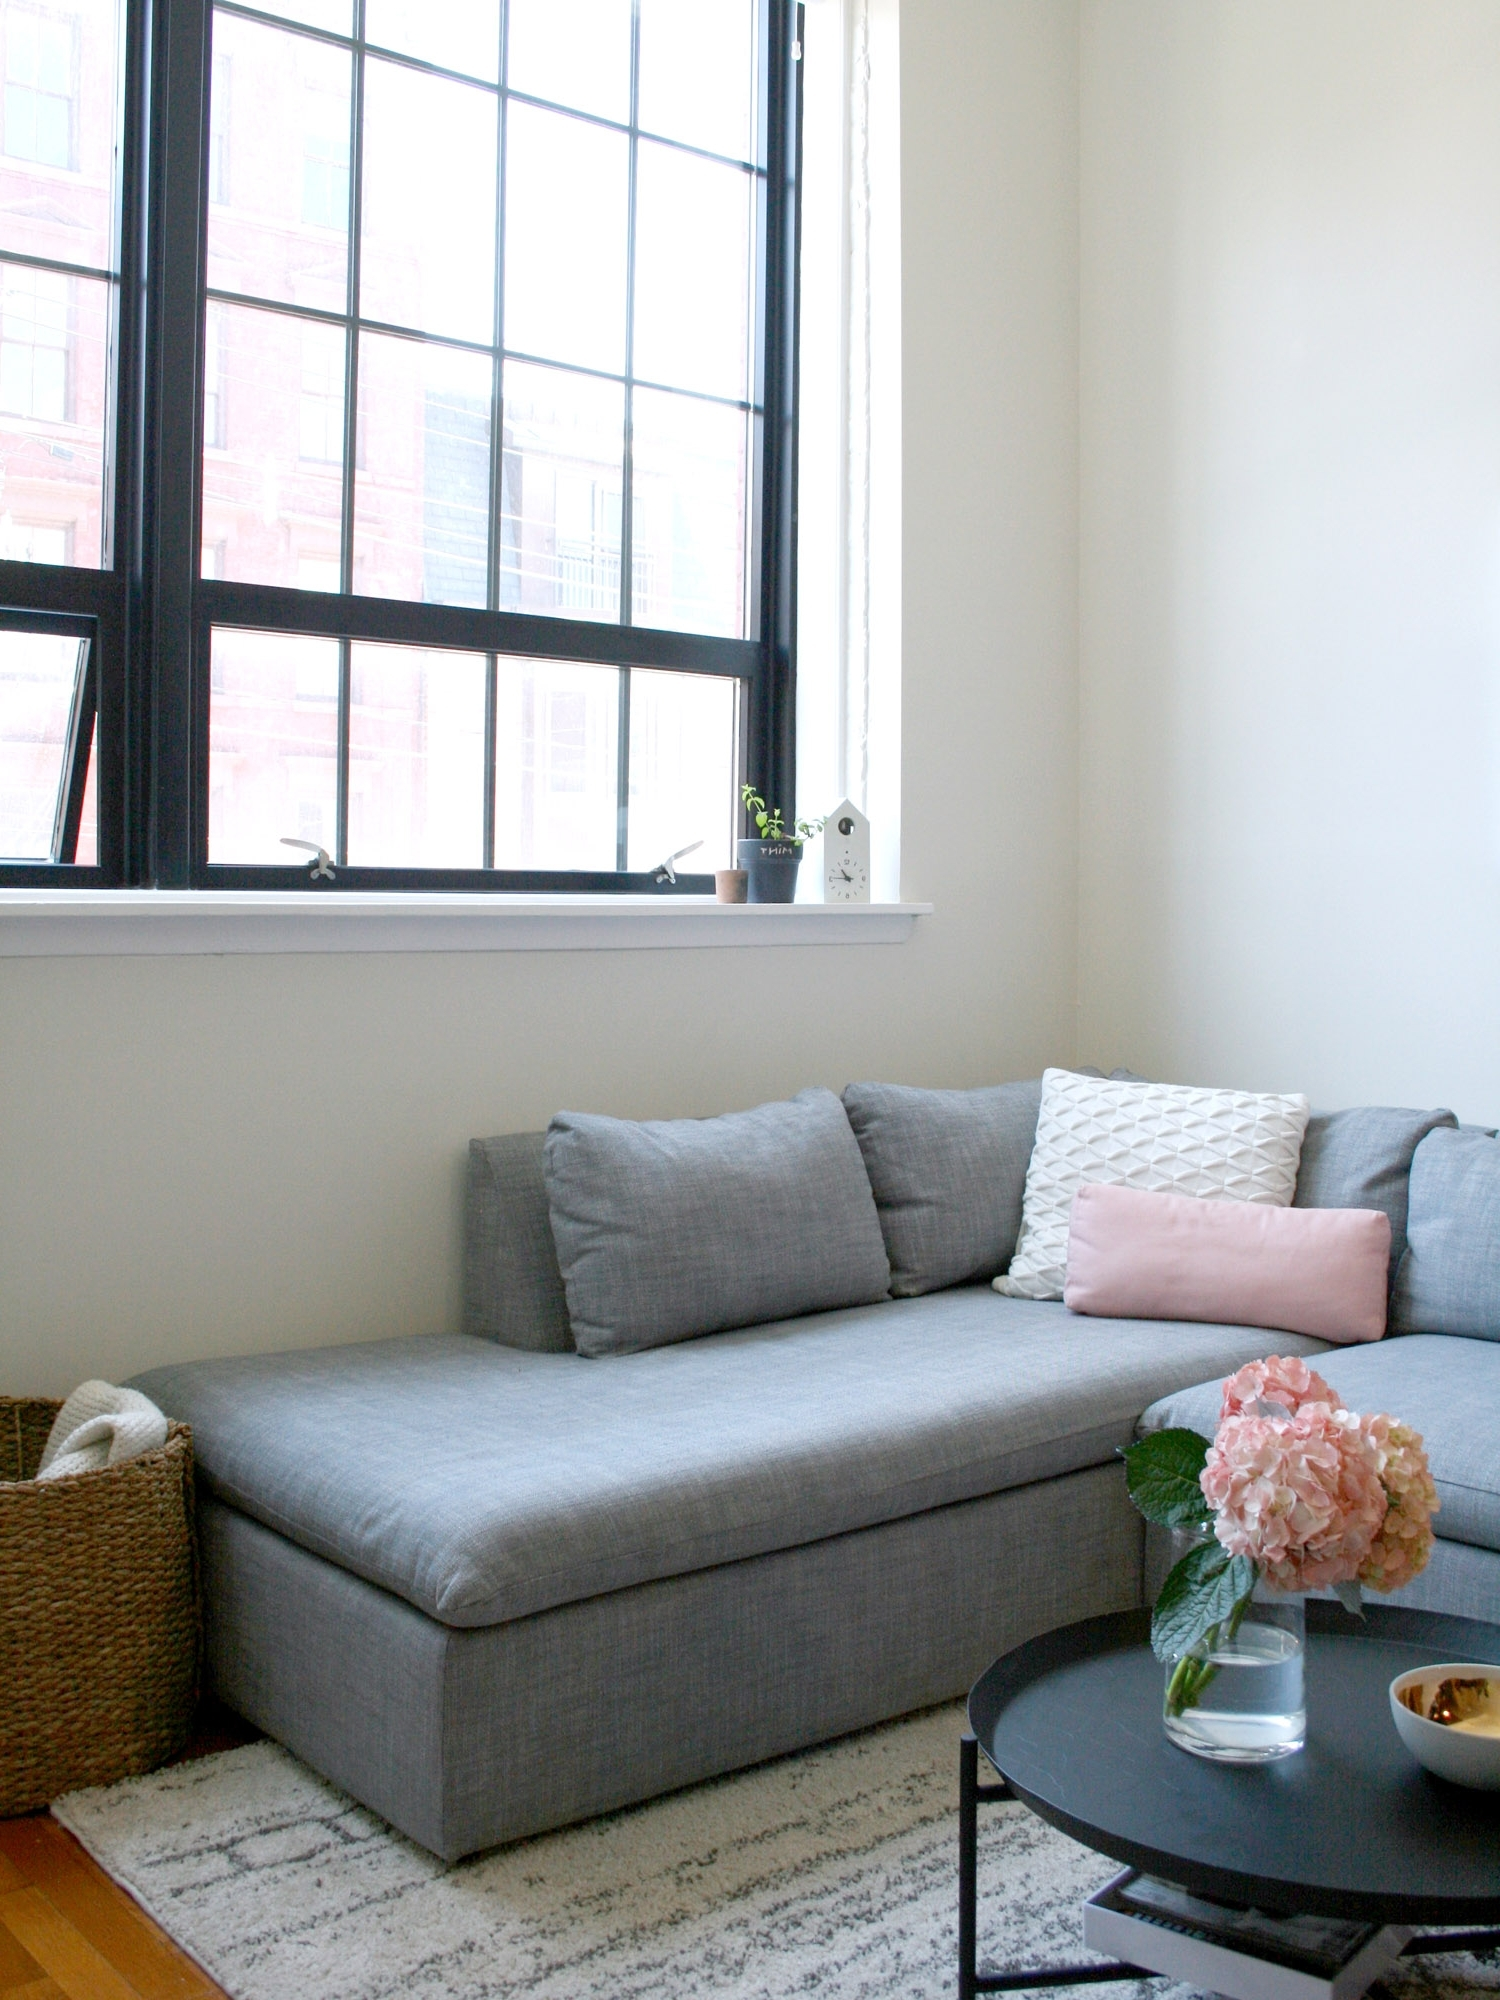 West Elm Sectional Sofas Throughout Recent Keeping It Simple In A Former Hoboken Factory – Front + Main (View 16 of 20)